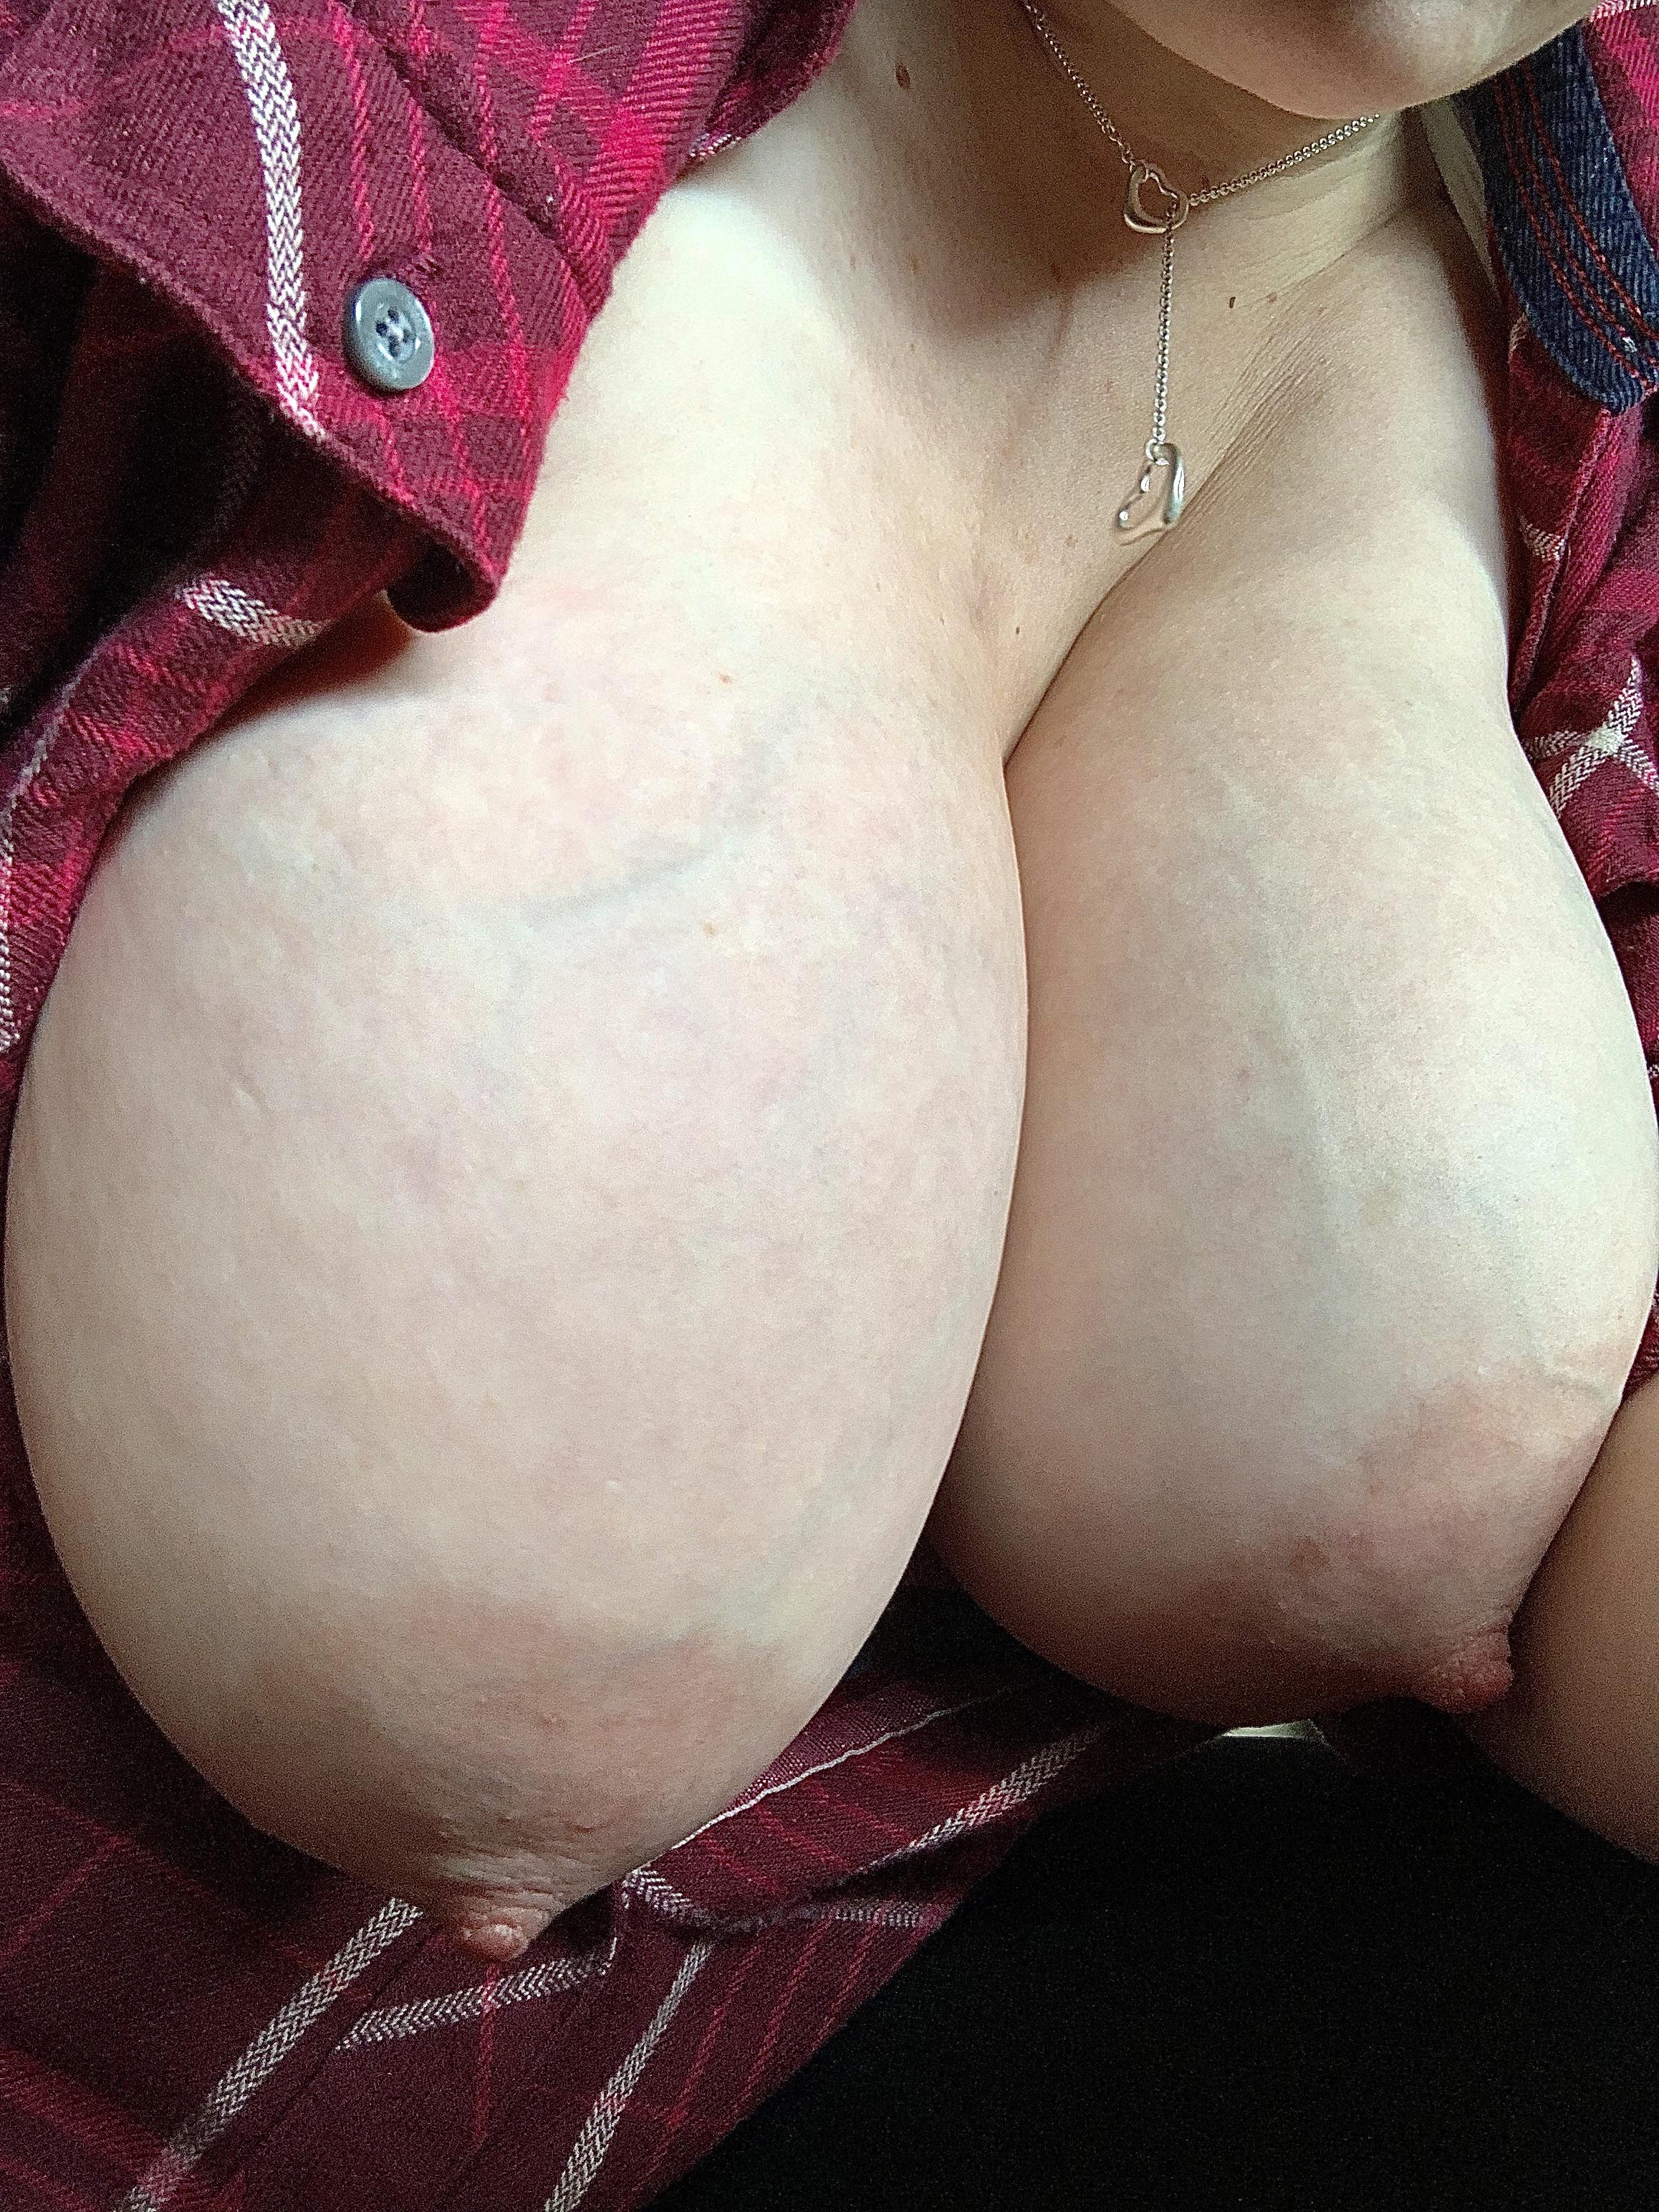 Engorged veiny breasts